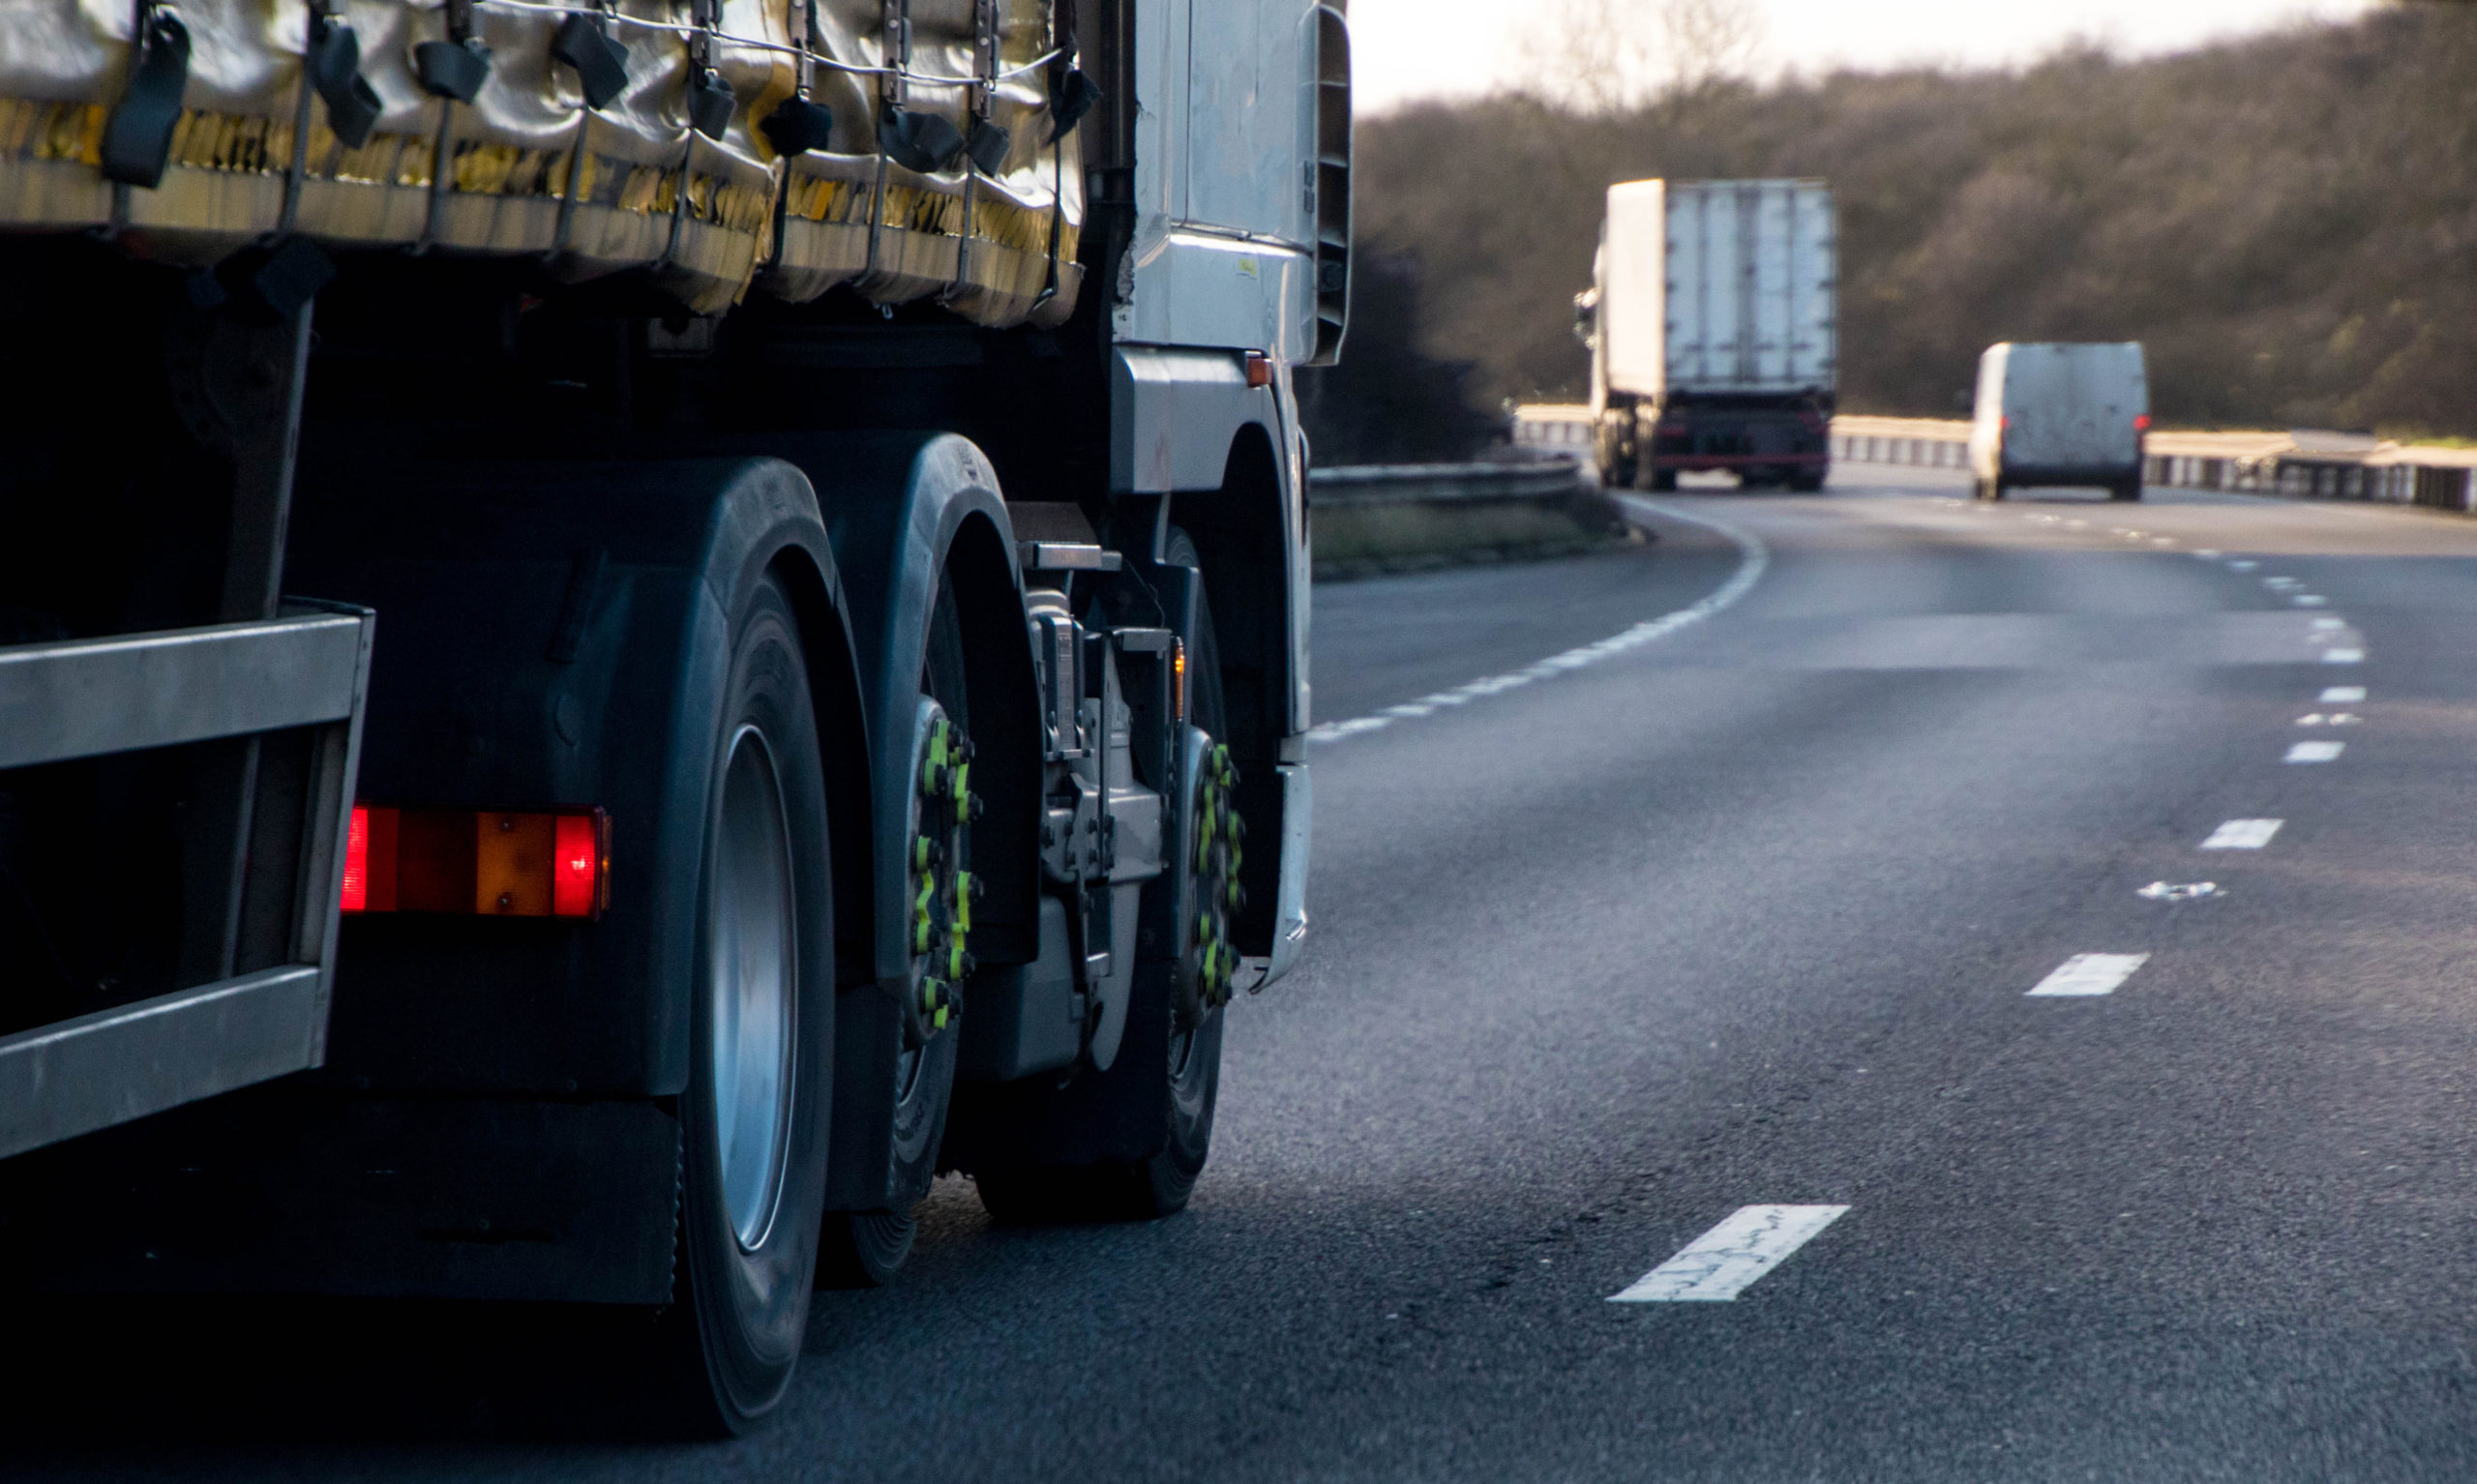 The haulage industry supports thousands of jobs across the UK.